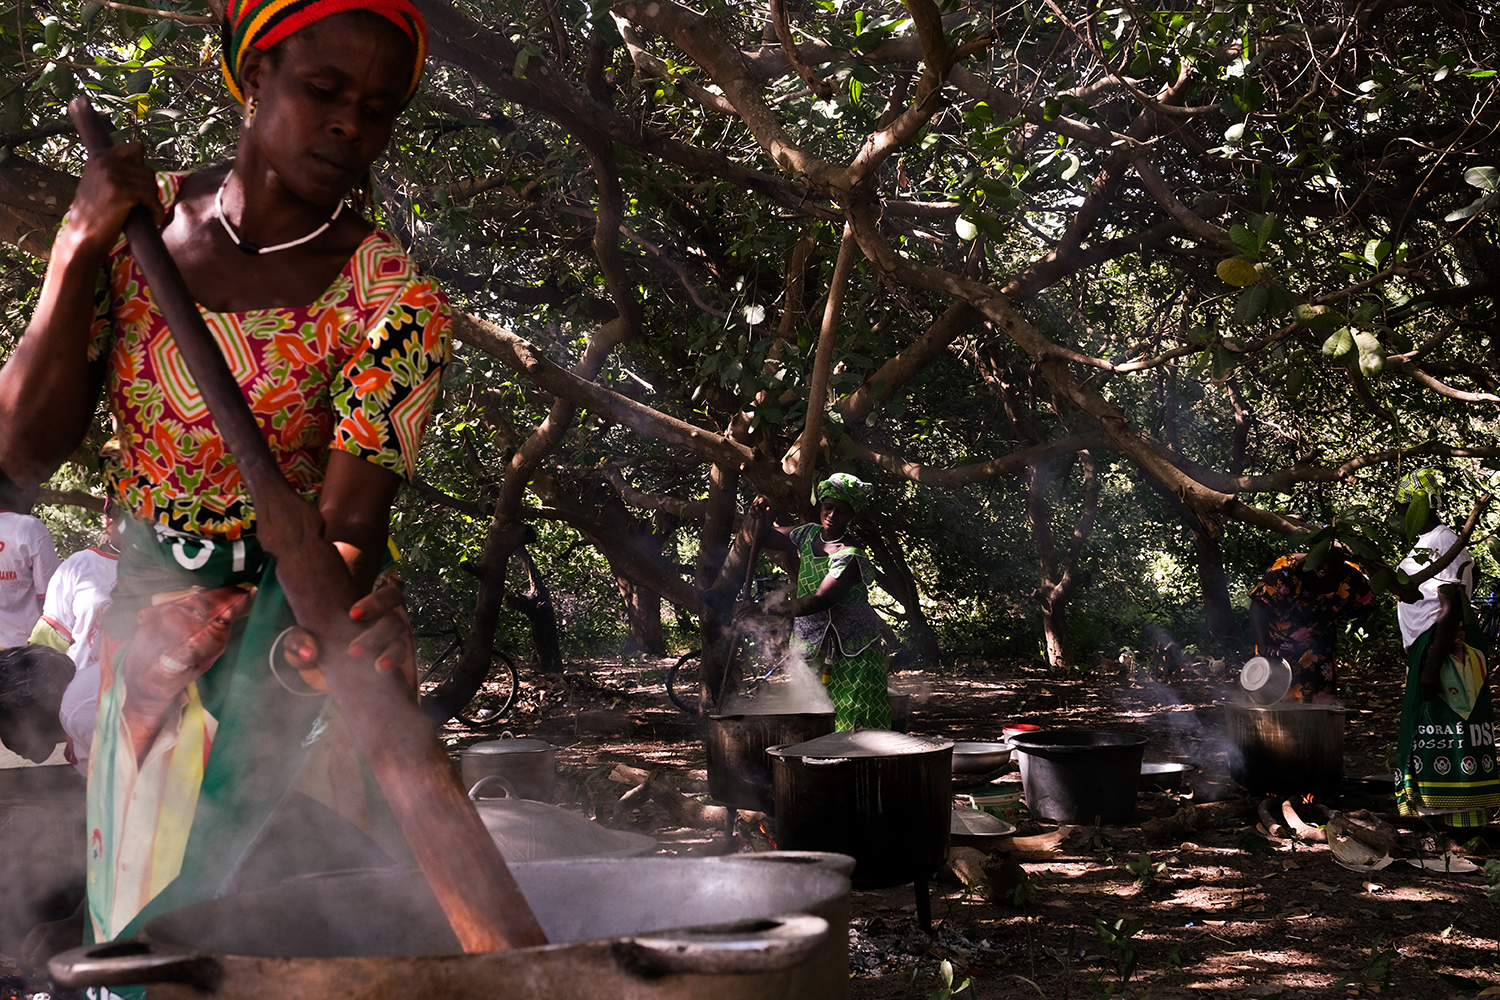 Women make large portions of lunch for campaign workers in the Cacheu region of Guinea Bissau on Nov. 11.